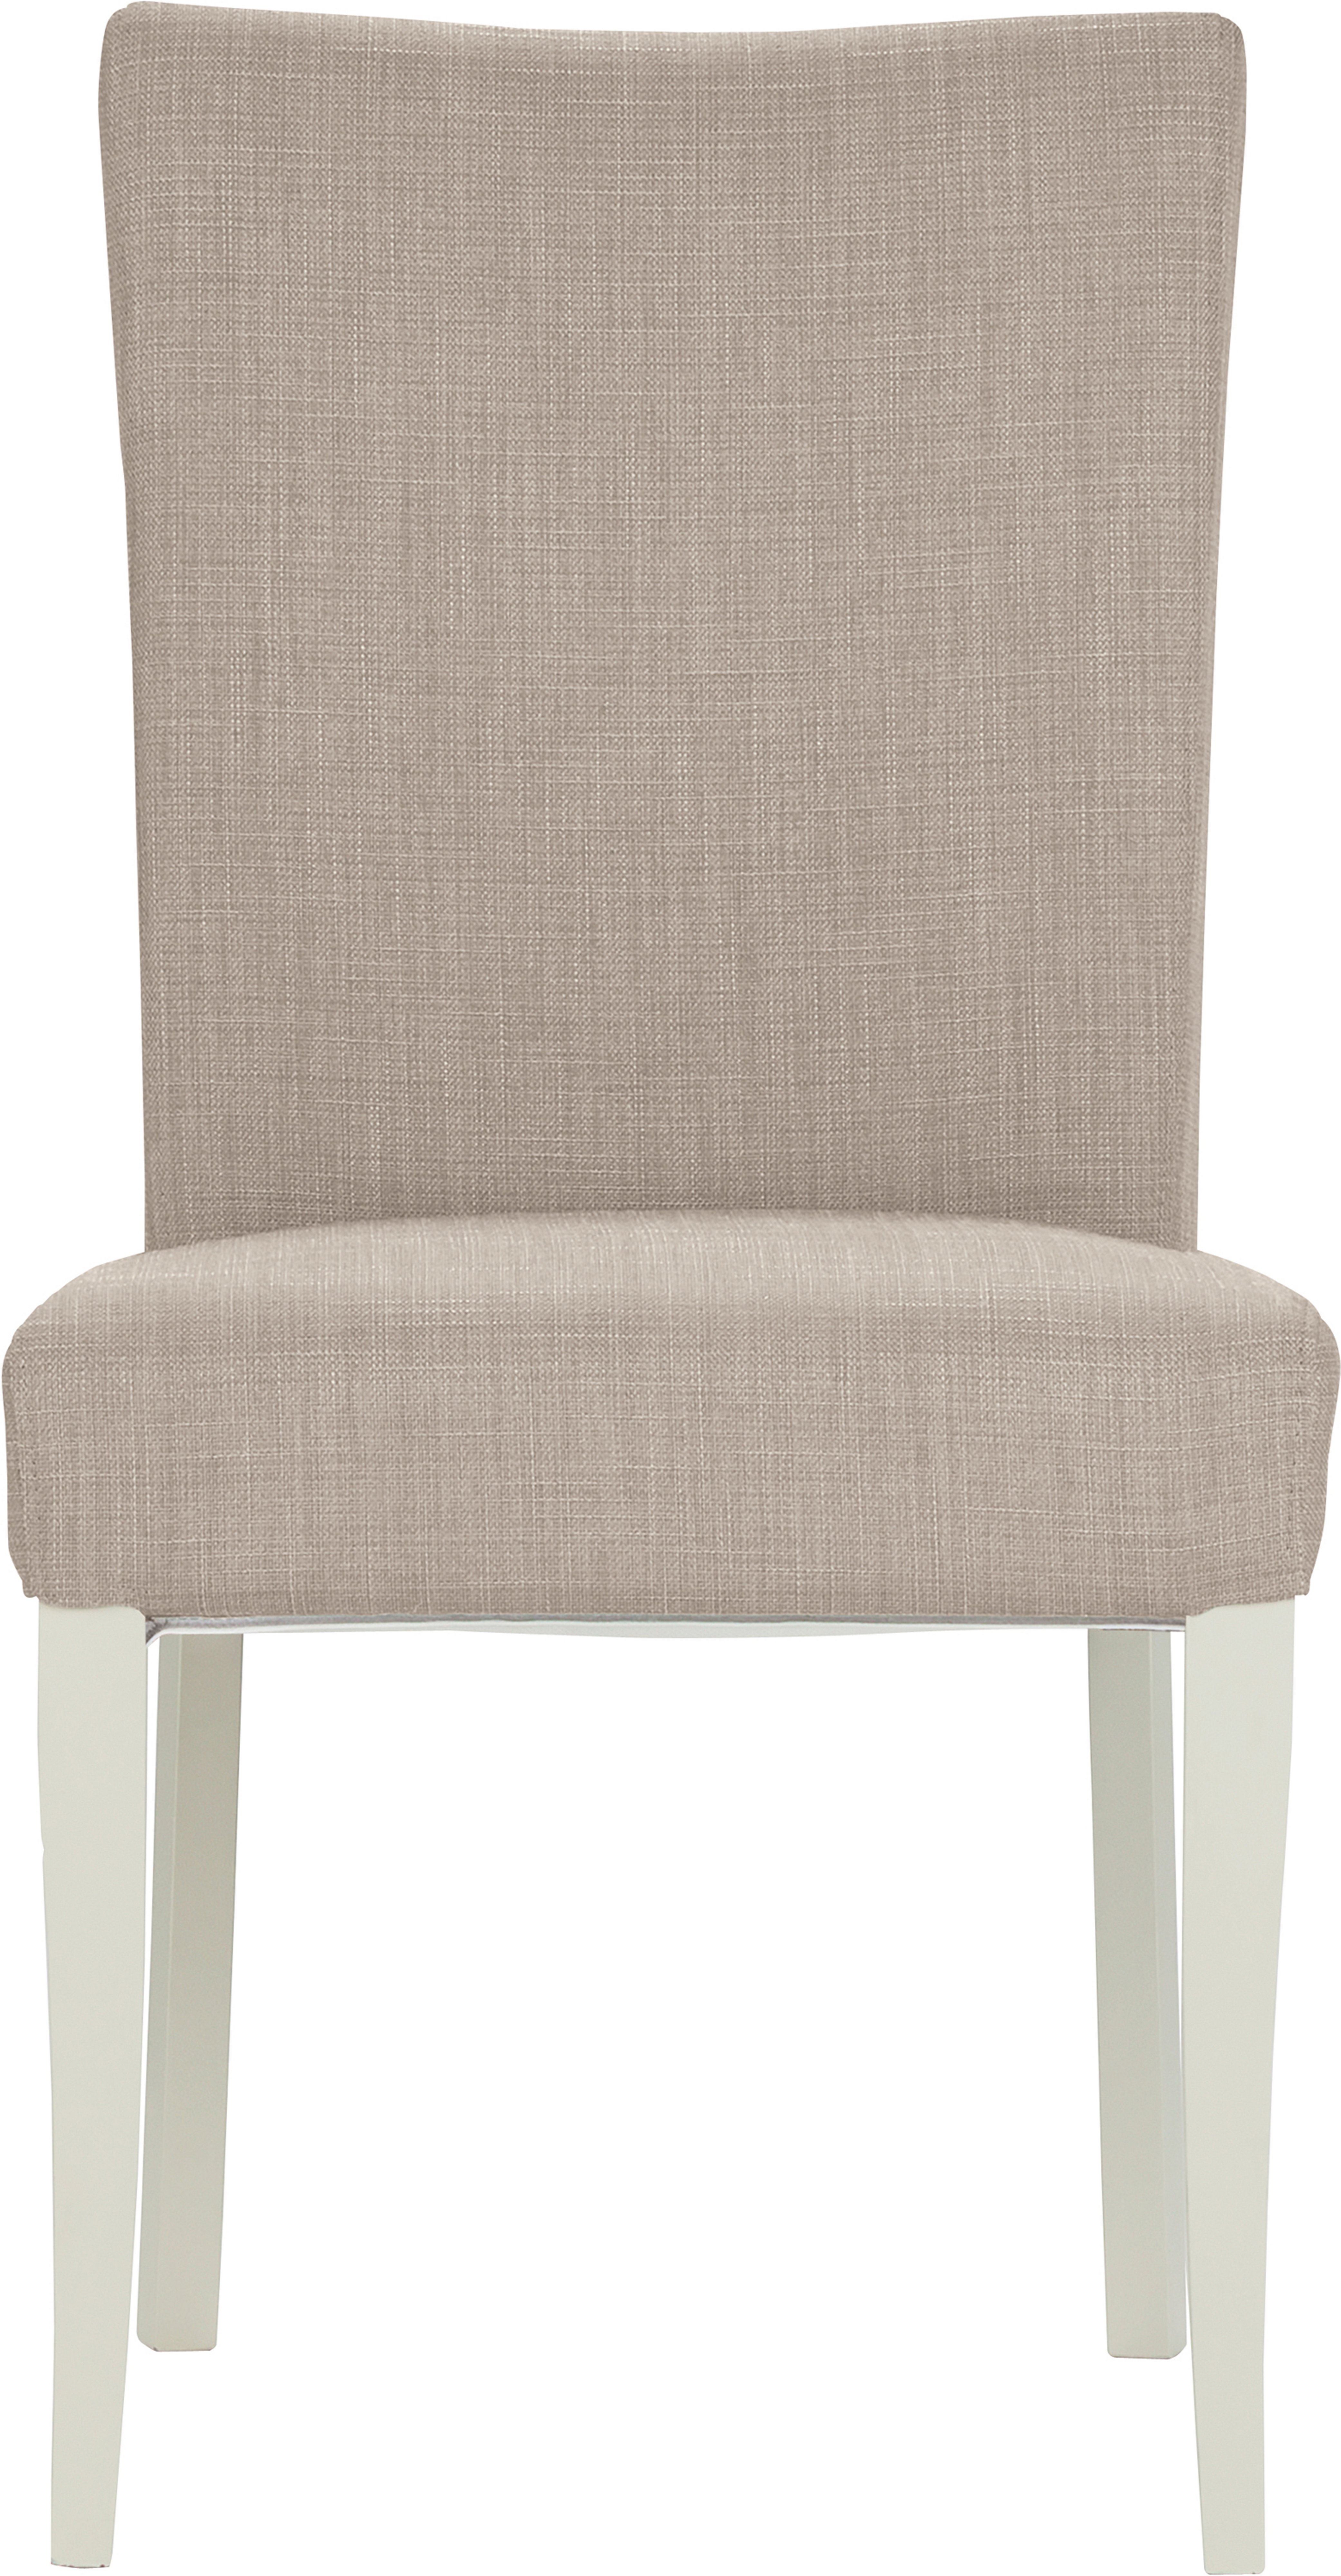 Buy Schreiber Pair of Upholstered Beech Dining Chairs  : 4999650RZ001AWebampw570amph513 from www.argos.co.uk size 570 x 513 jpeg 15kB